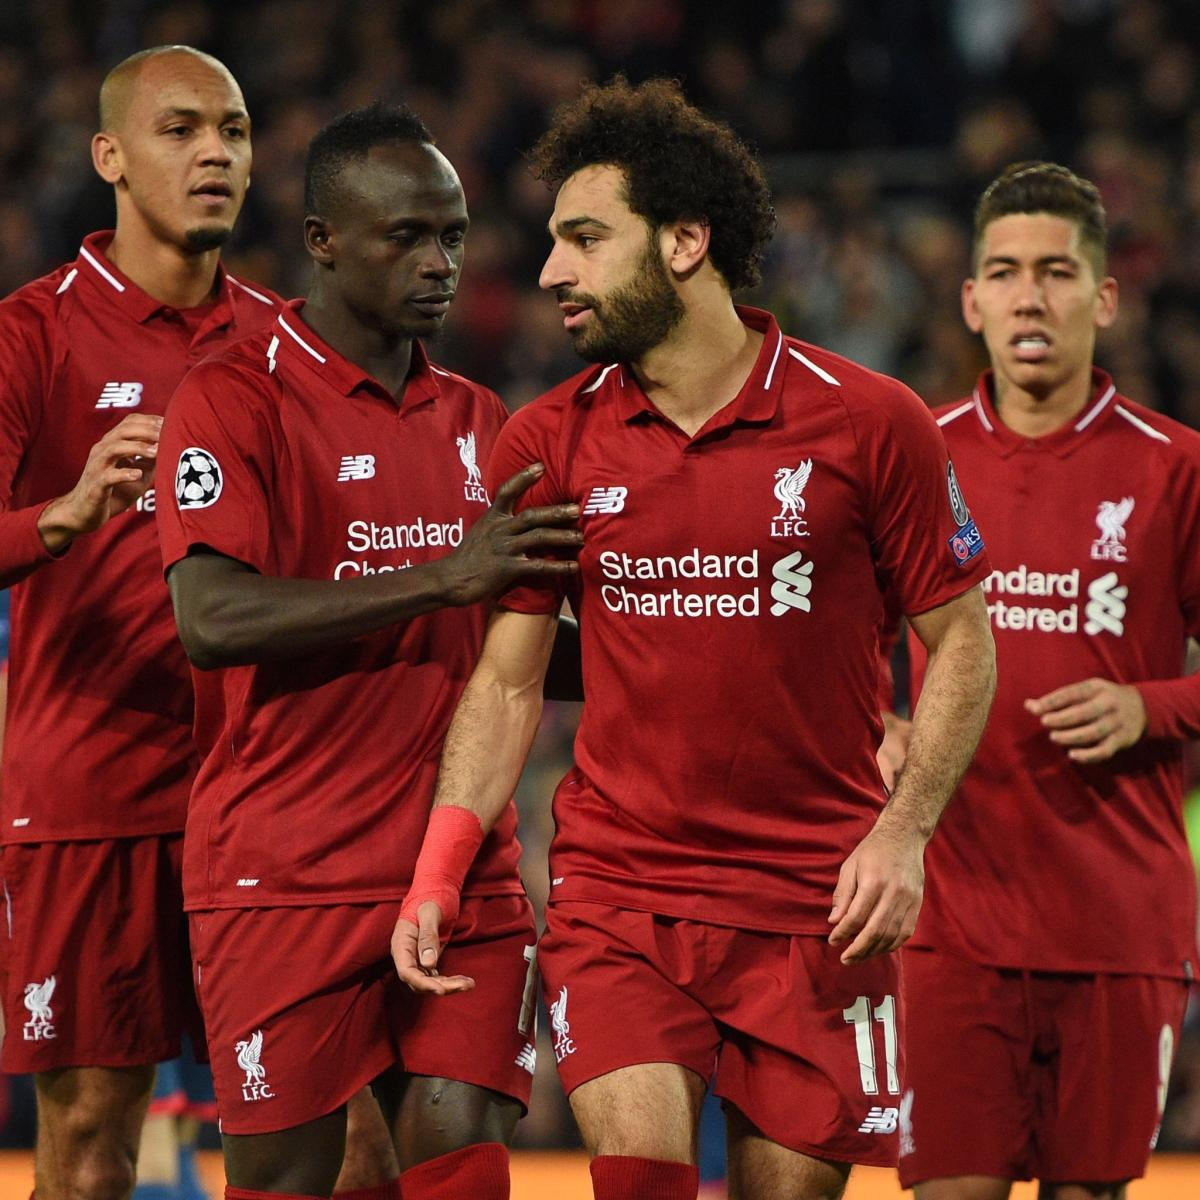 Barcelona Vs Liverpool Odds Live Stream Tv Info For: Liverpool Vs. Cardiff: Odds, Preview, Live Stream And TV